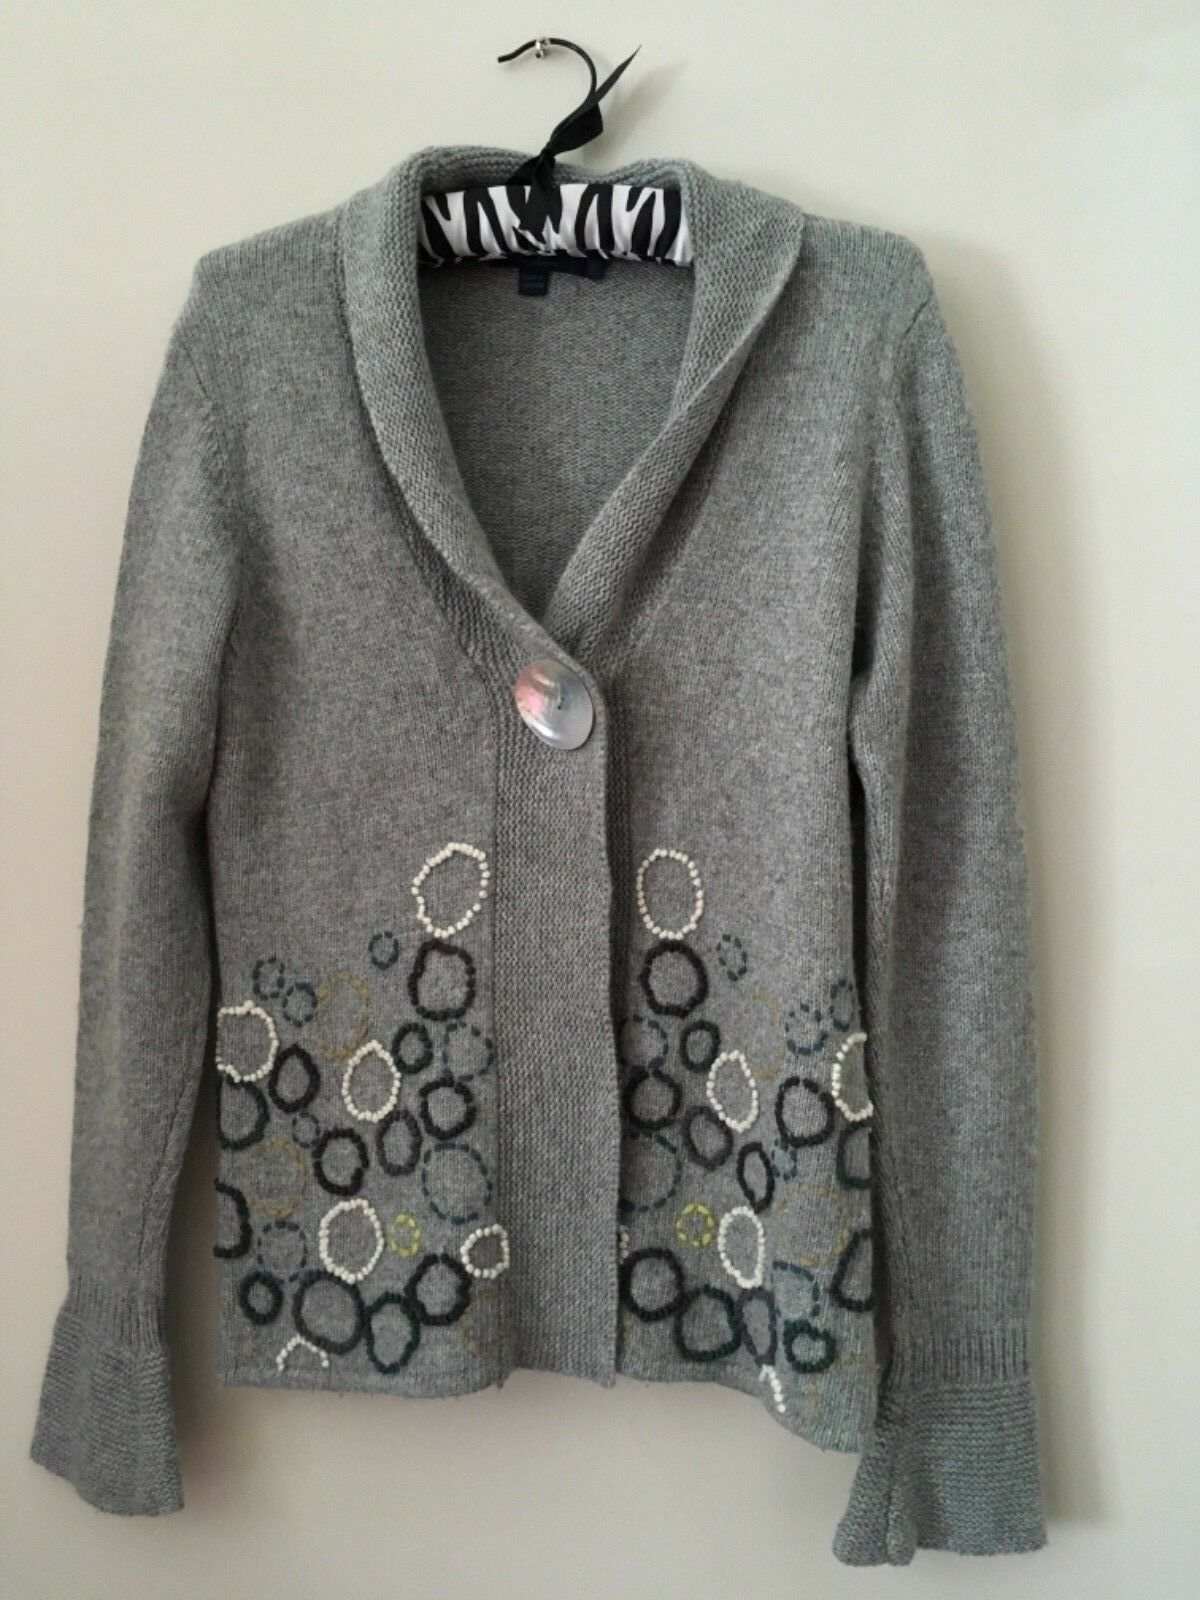 BODEN CARDIGAN, SIZE 14, WOOL MIX, SUPER SOFT, FABULOUS QUALITY, WORN ONCE